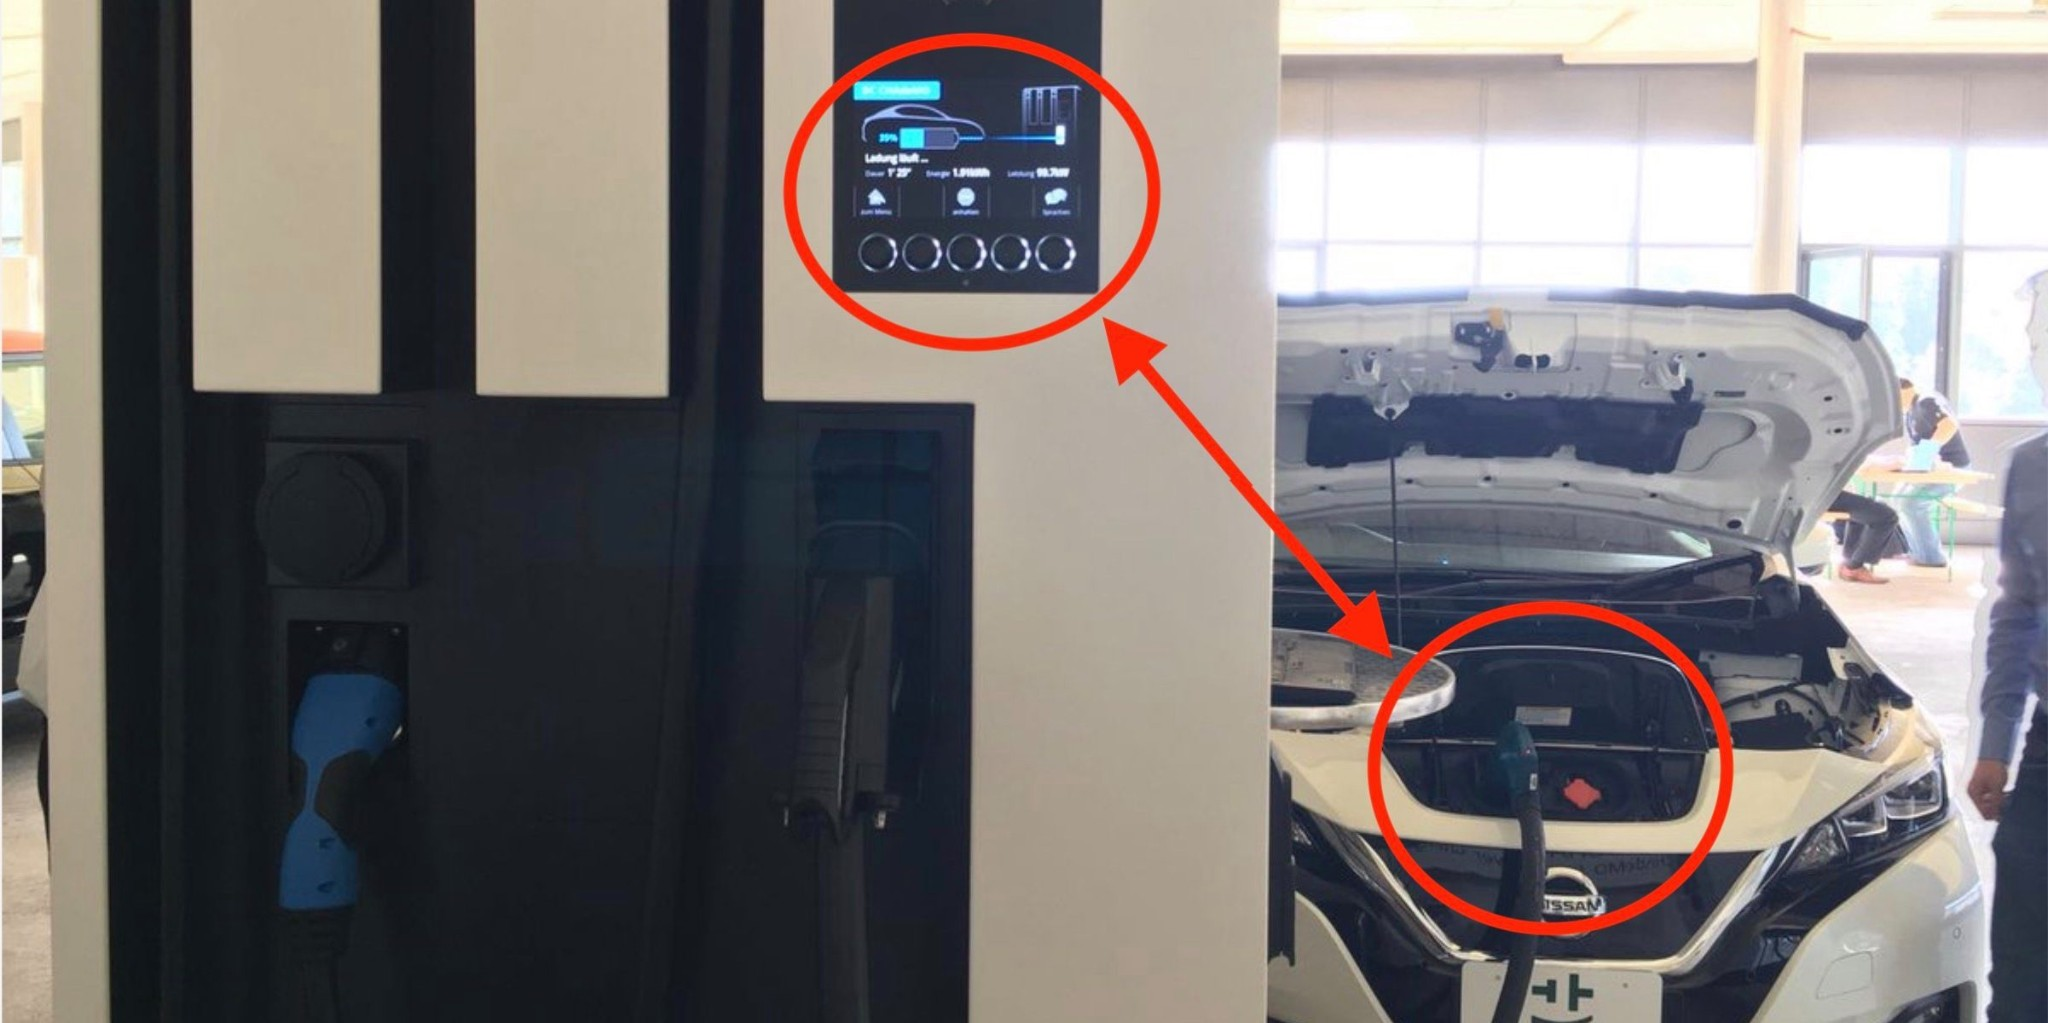 Nissan Leaf prototype with new 60 kWh battery pack leaked fast-charging at 102 kW - Electrek